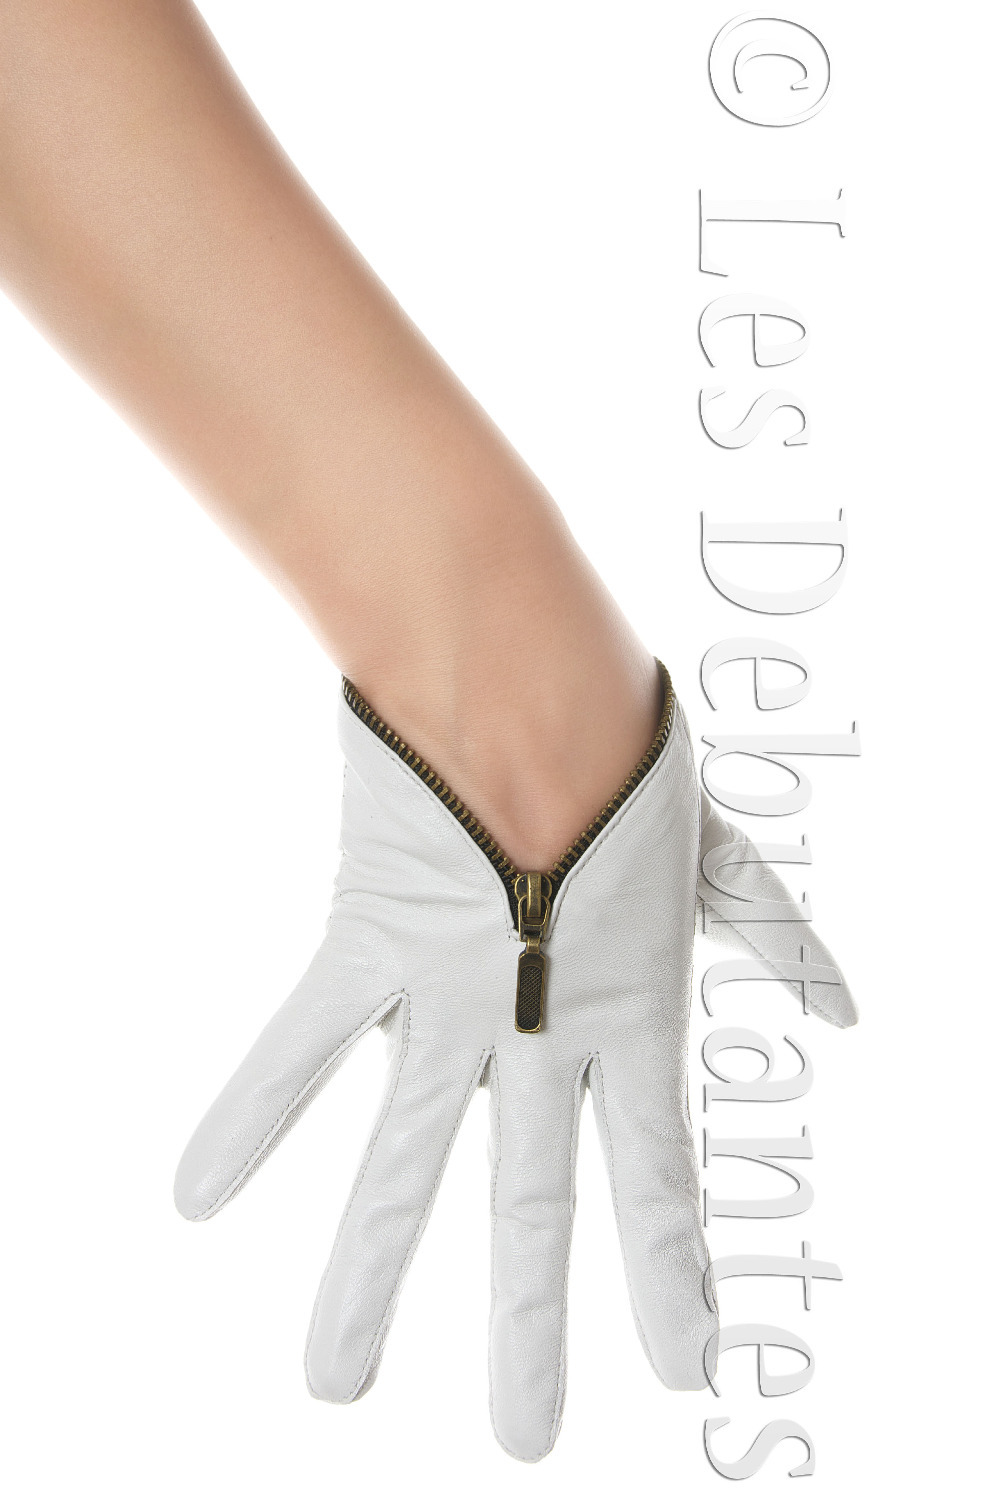 Leather driving gloves with zipper - Aliexpress Com Buy Women S White Leather Zip Driving Gloves Zipper Biker Free Shipping From Reliable Glove Suppliers On Online Store 120562